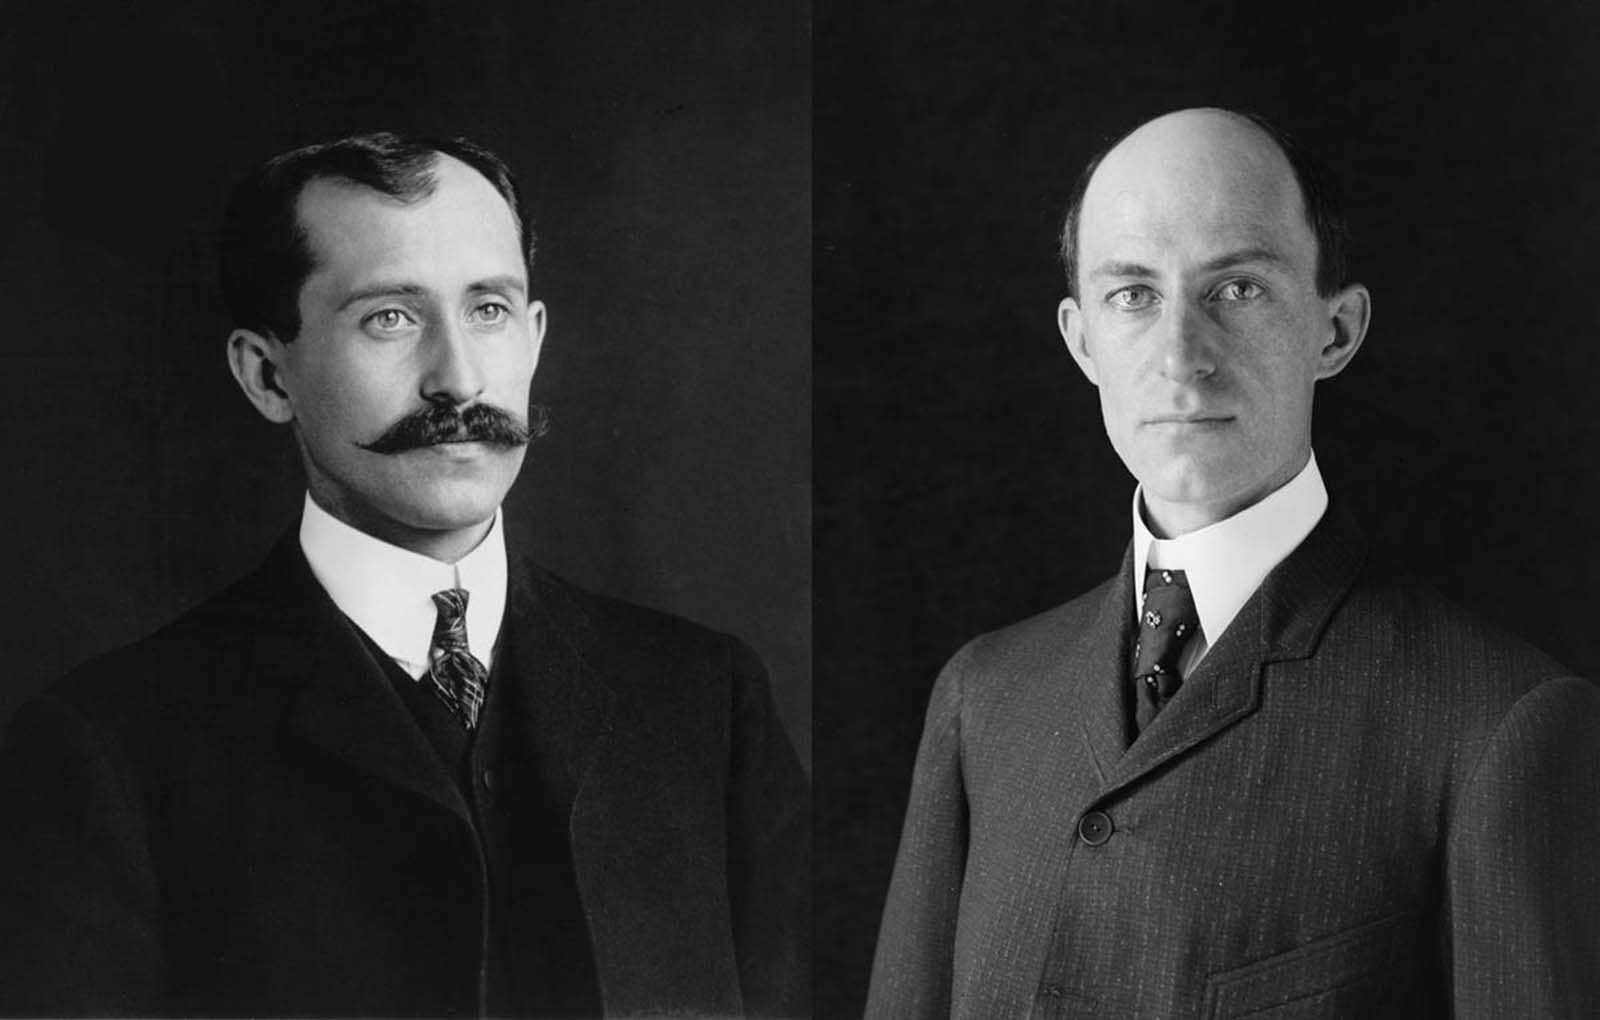 From left, Orville and Wilbur Wright, in portraits taken in 1905, when they were 34 and 38 years old.